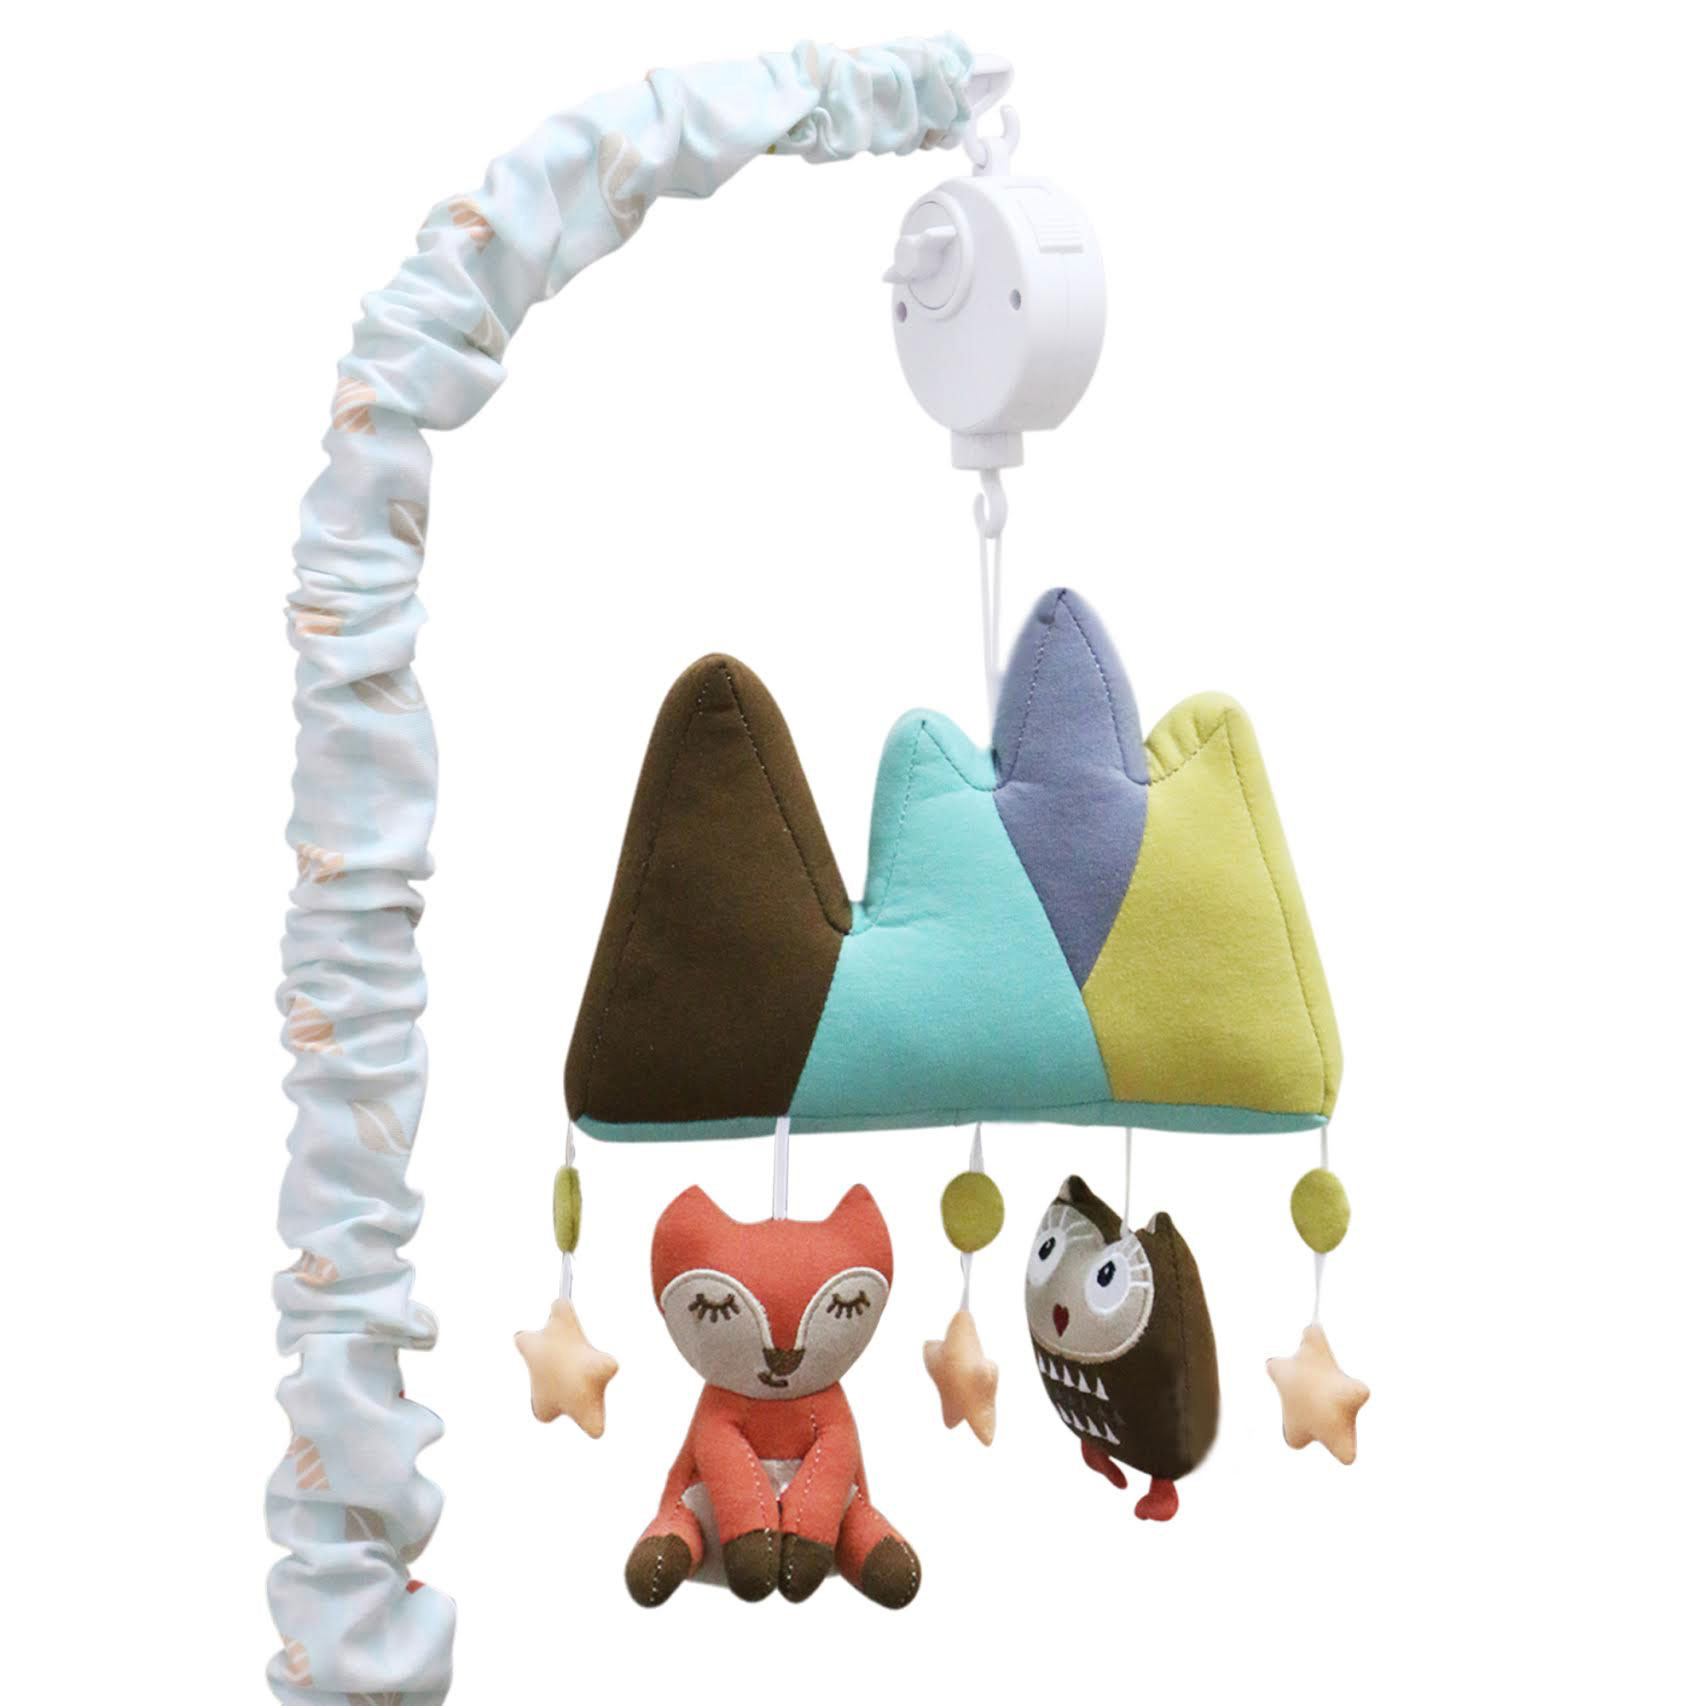 Little Haven Clever Fox Musical Mobile - Woodland Animals Theme - Nursery Crib Mobile